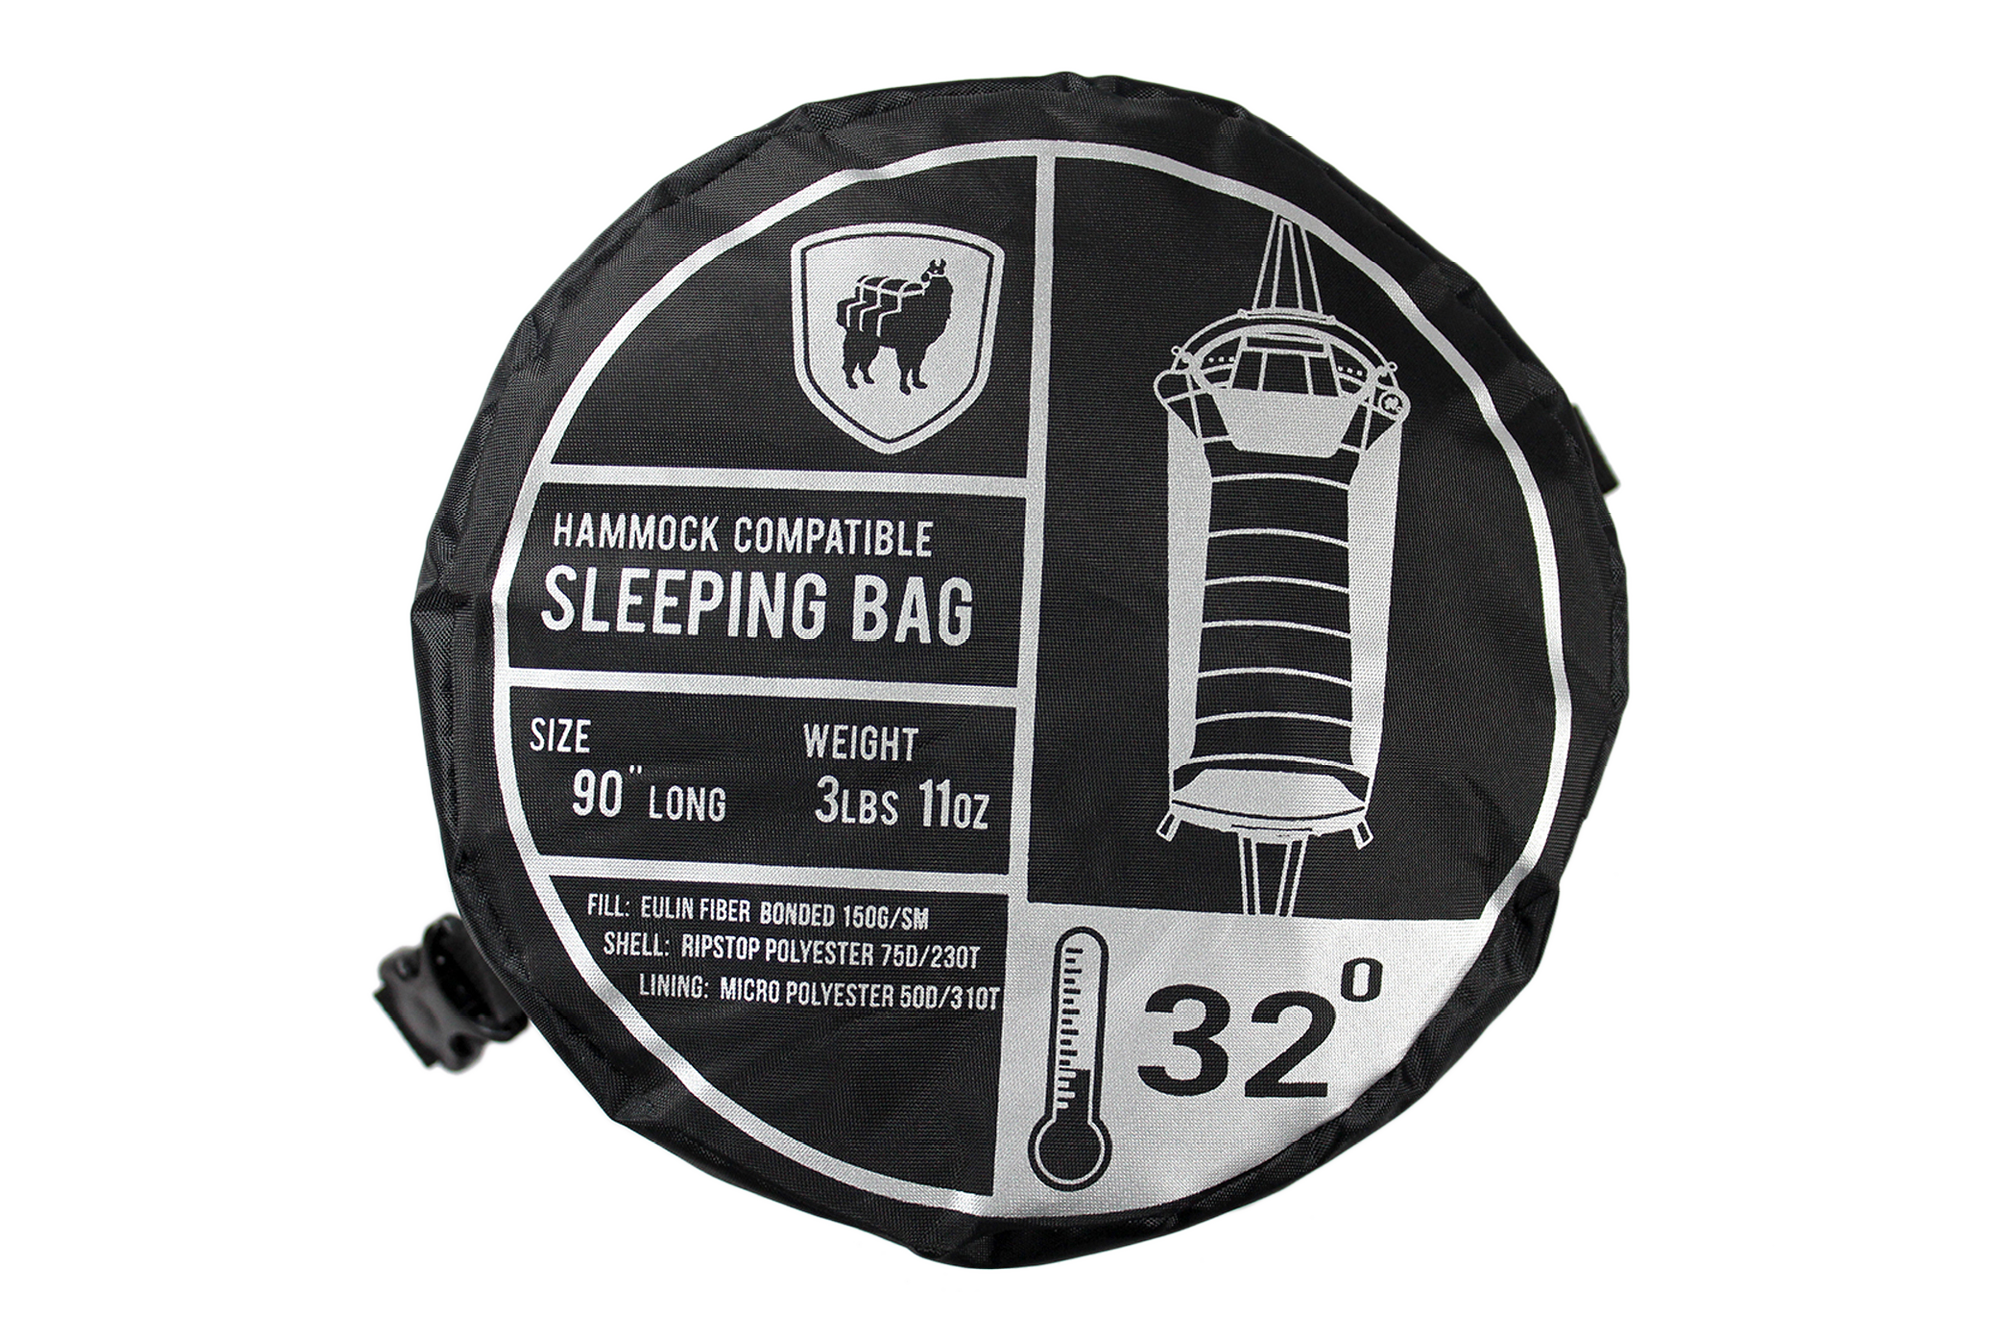 Hammock Compatible Sleeping Bag